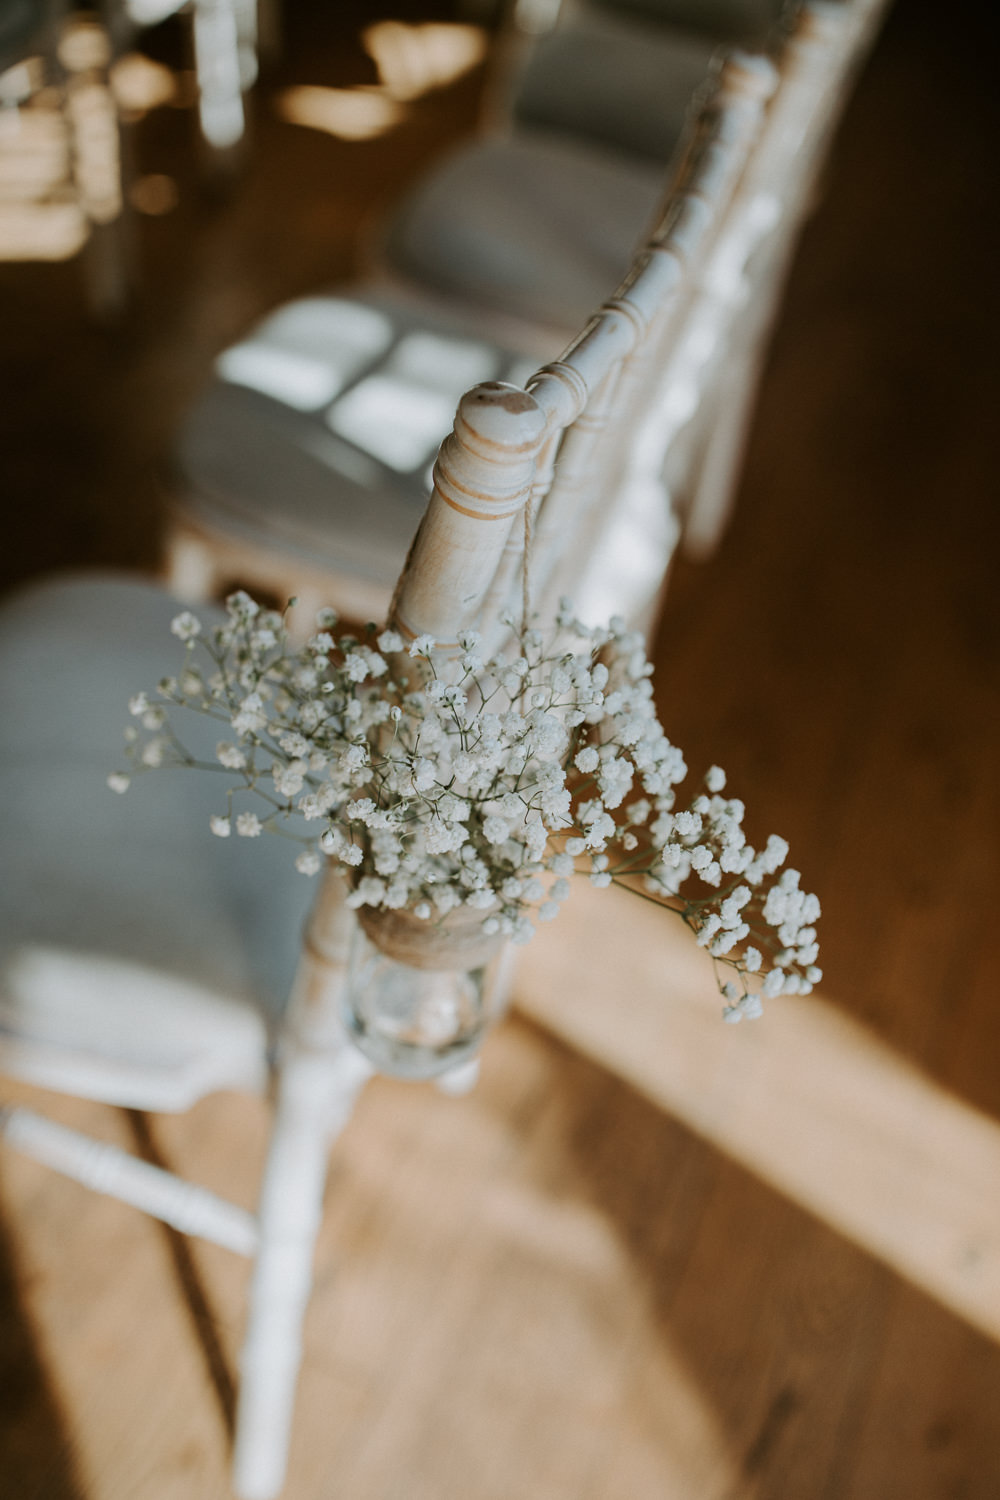 Gypsophila Flowers Jar Pew End Chairs Aisle Barn Upcote Wedding Siobhan Beales Photography